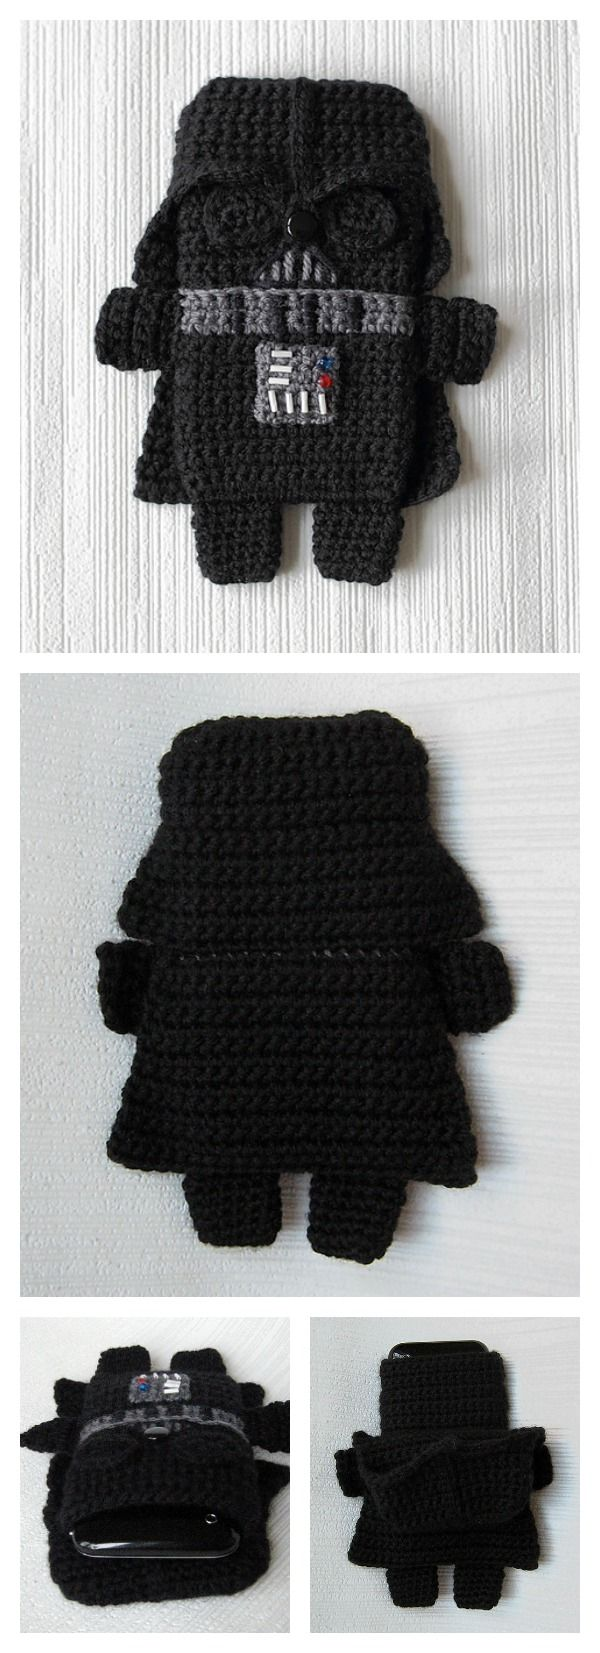 Star Wars Phone Case Crochet Patterns Rund Um Die Wolle